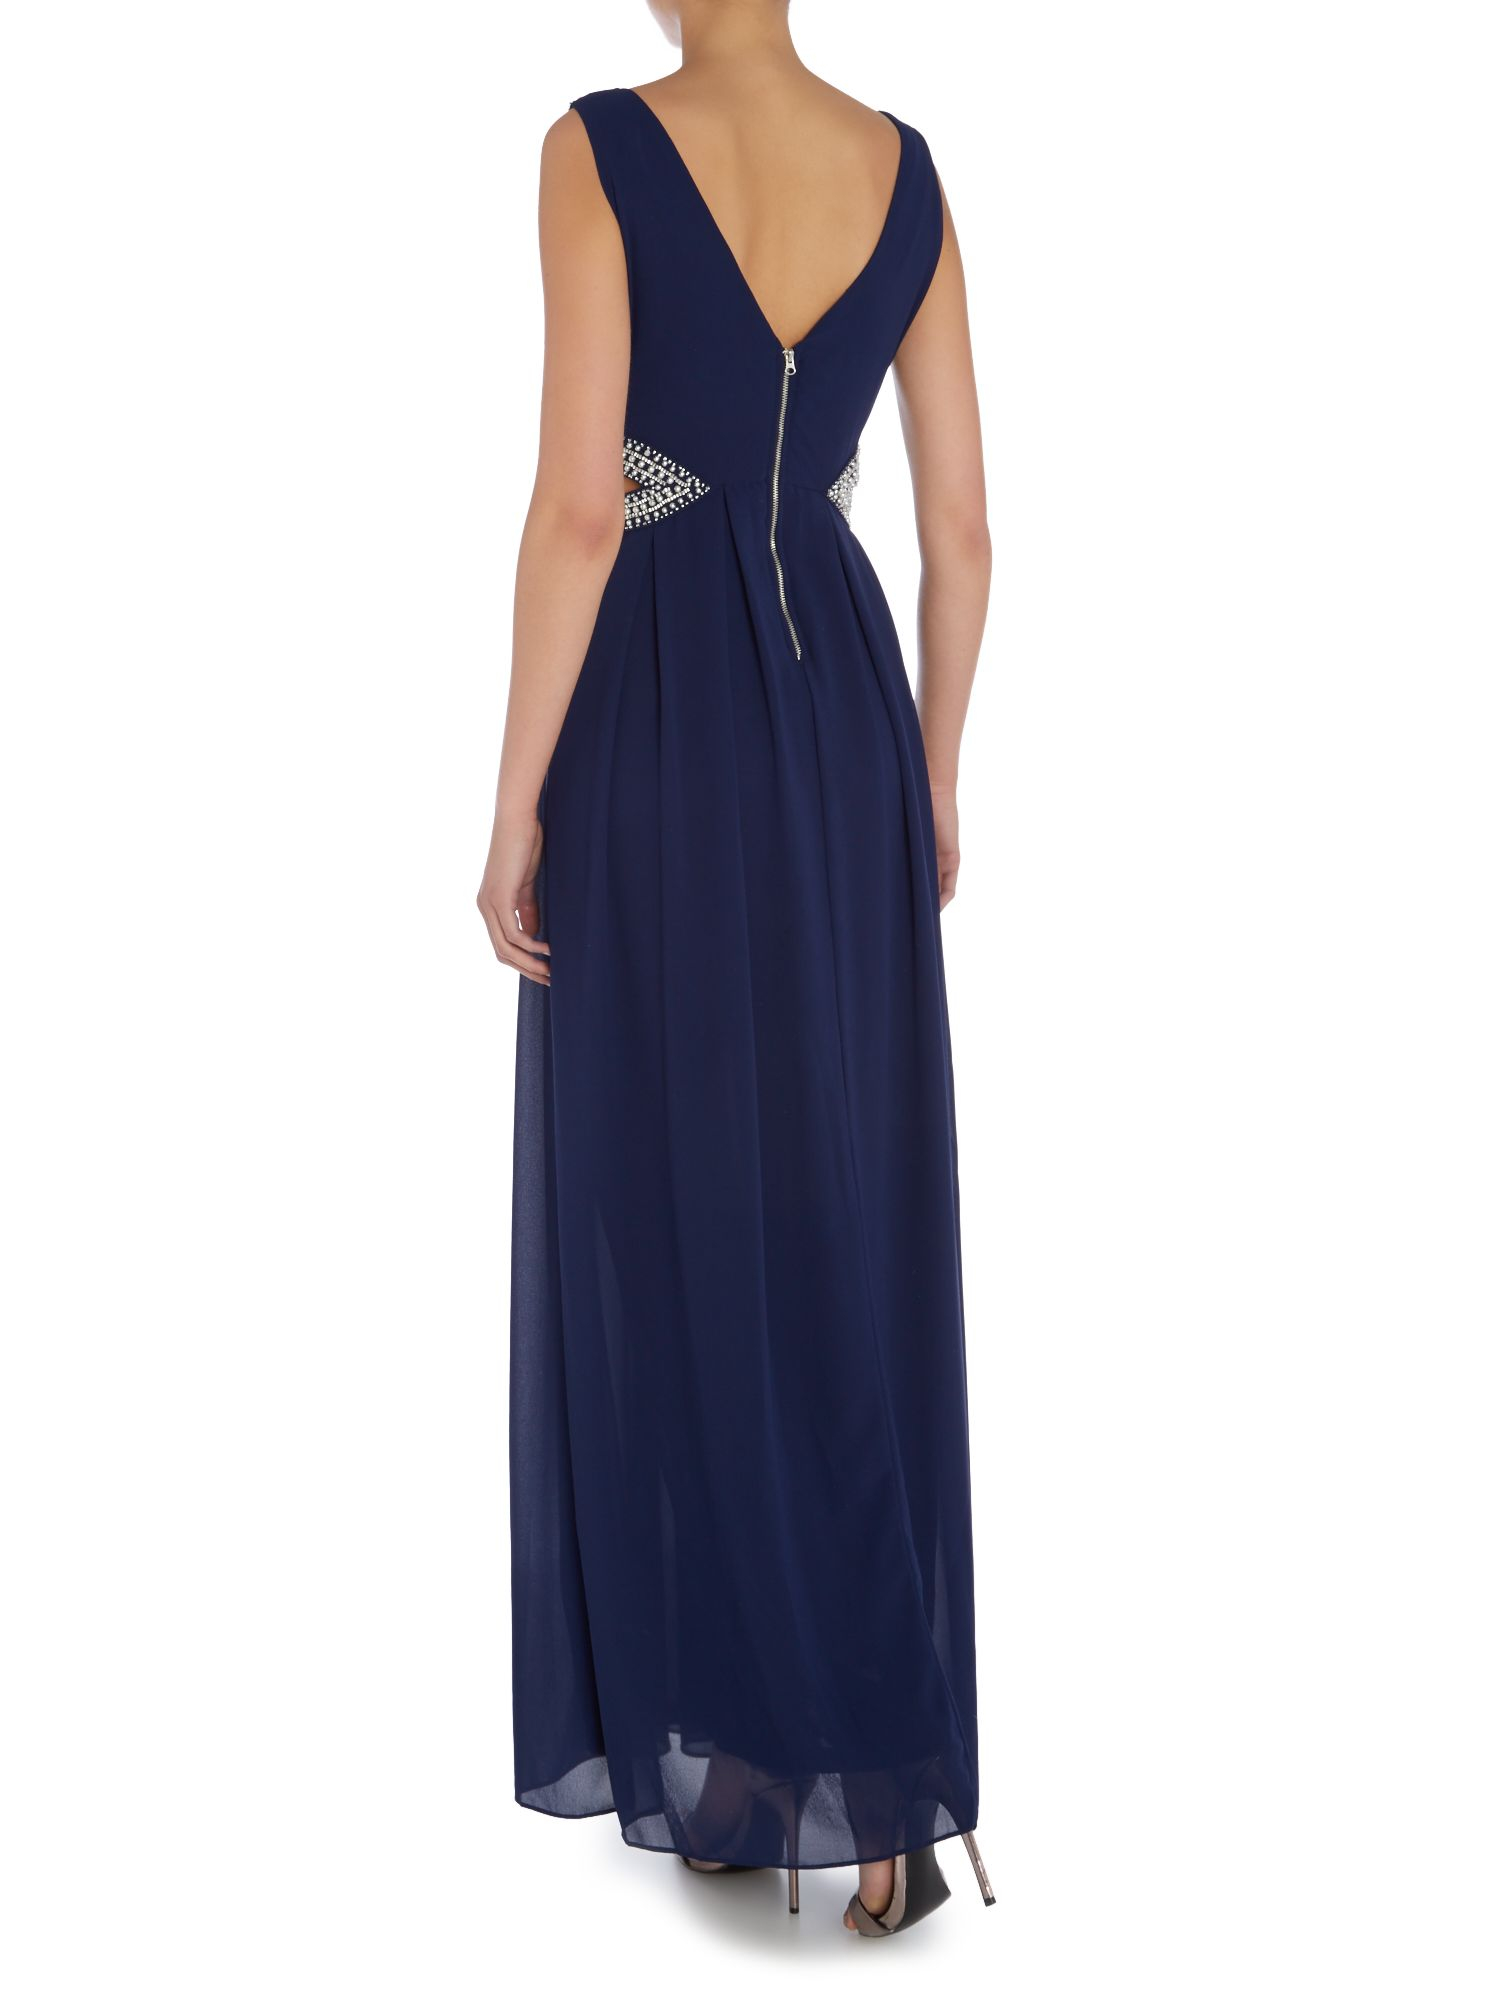 House of fraser evening maxi dresses